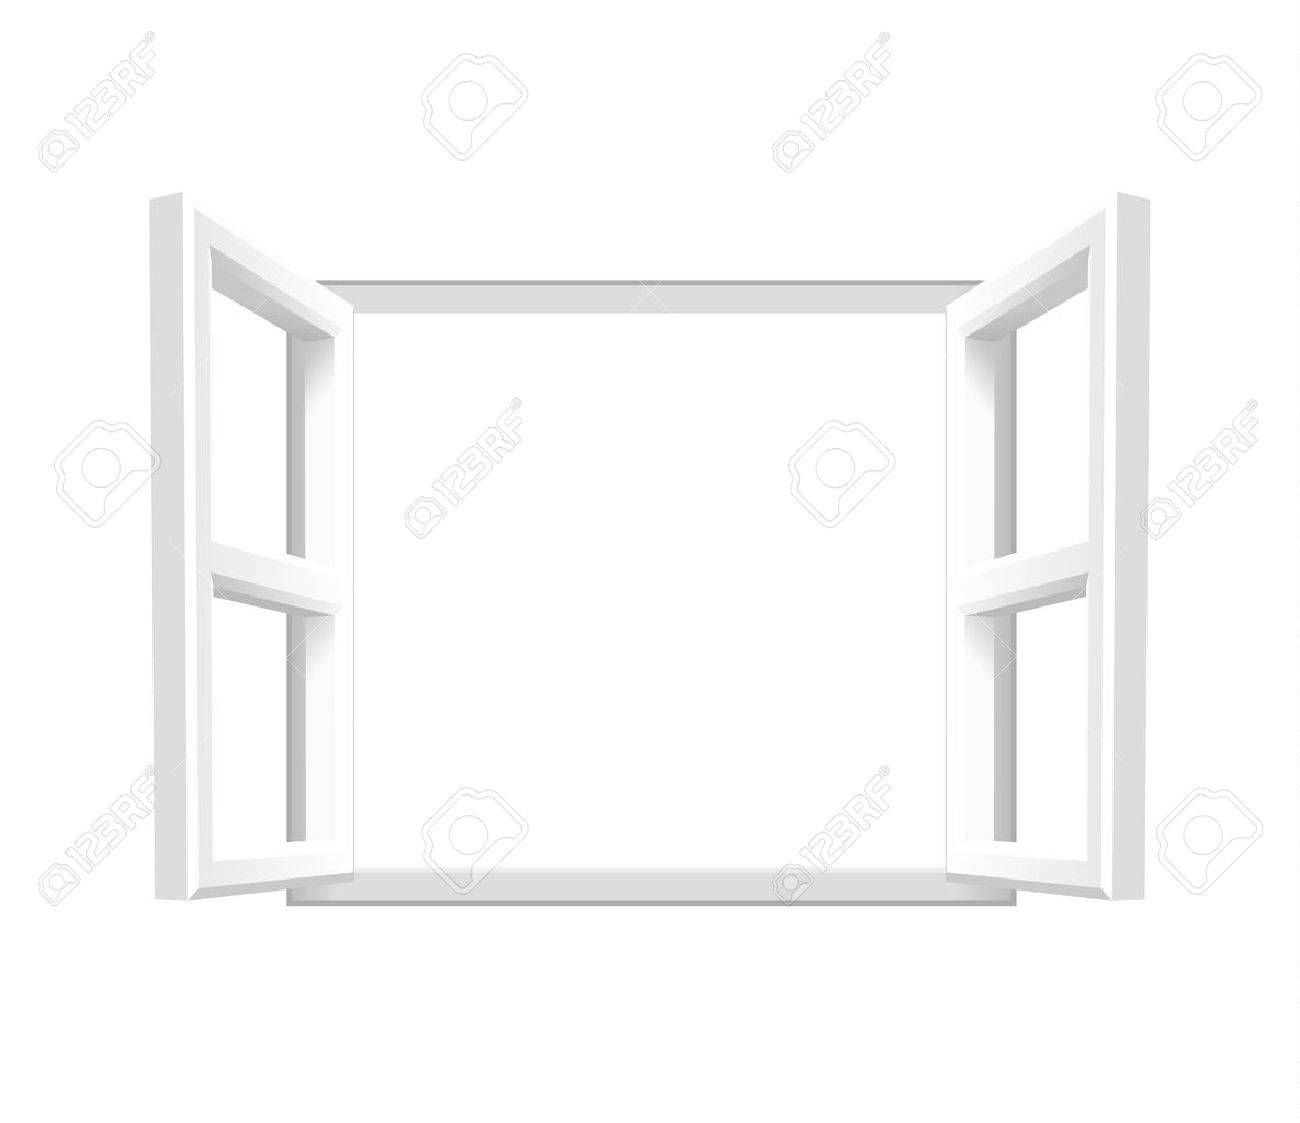 Plain White Open Window Add your own image or text. Vector illustration of an open window. - 44675990